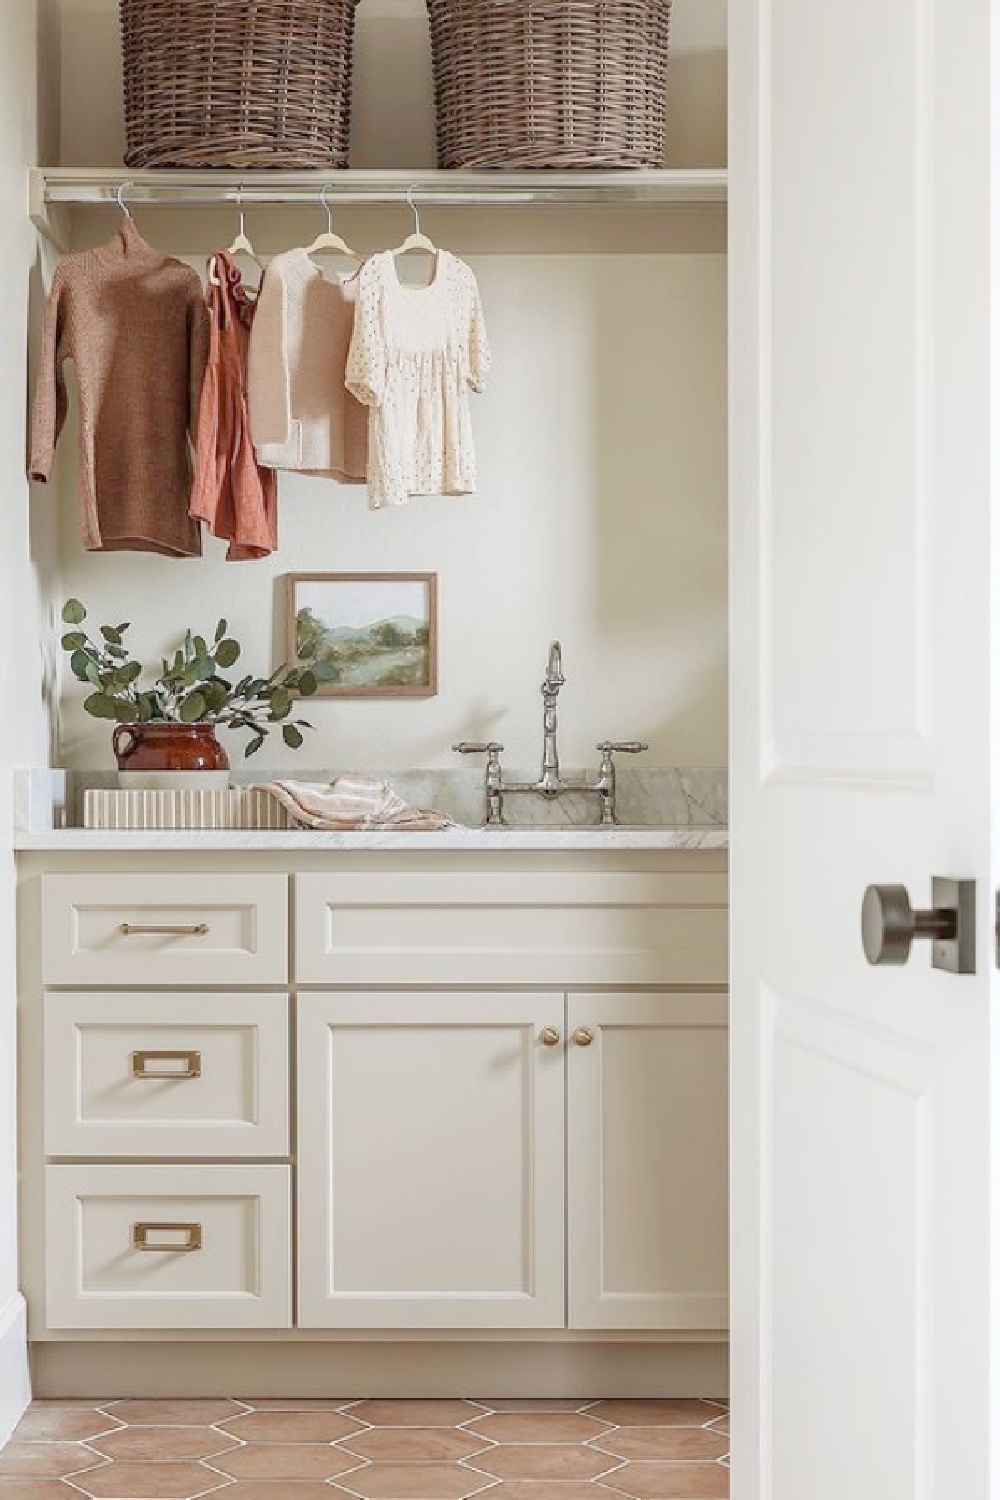 Sophisticated laundry room with putty cabinets, terracotta hex tile, and bridge faucet - Kelsey Leigh Design Co. #laundryrooms #interiordesign